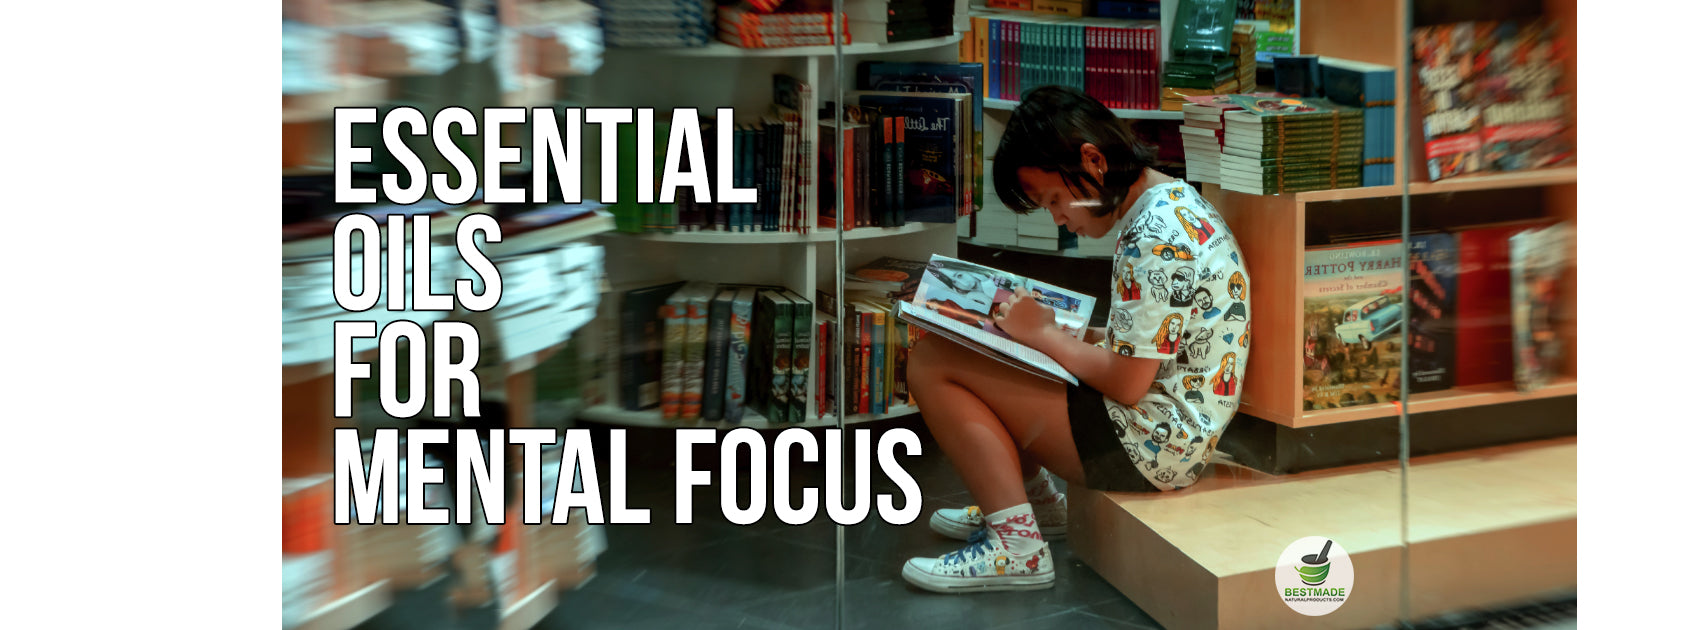 Essential Oils For Mental Focus